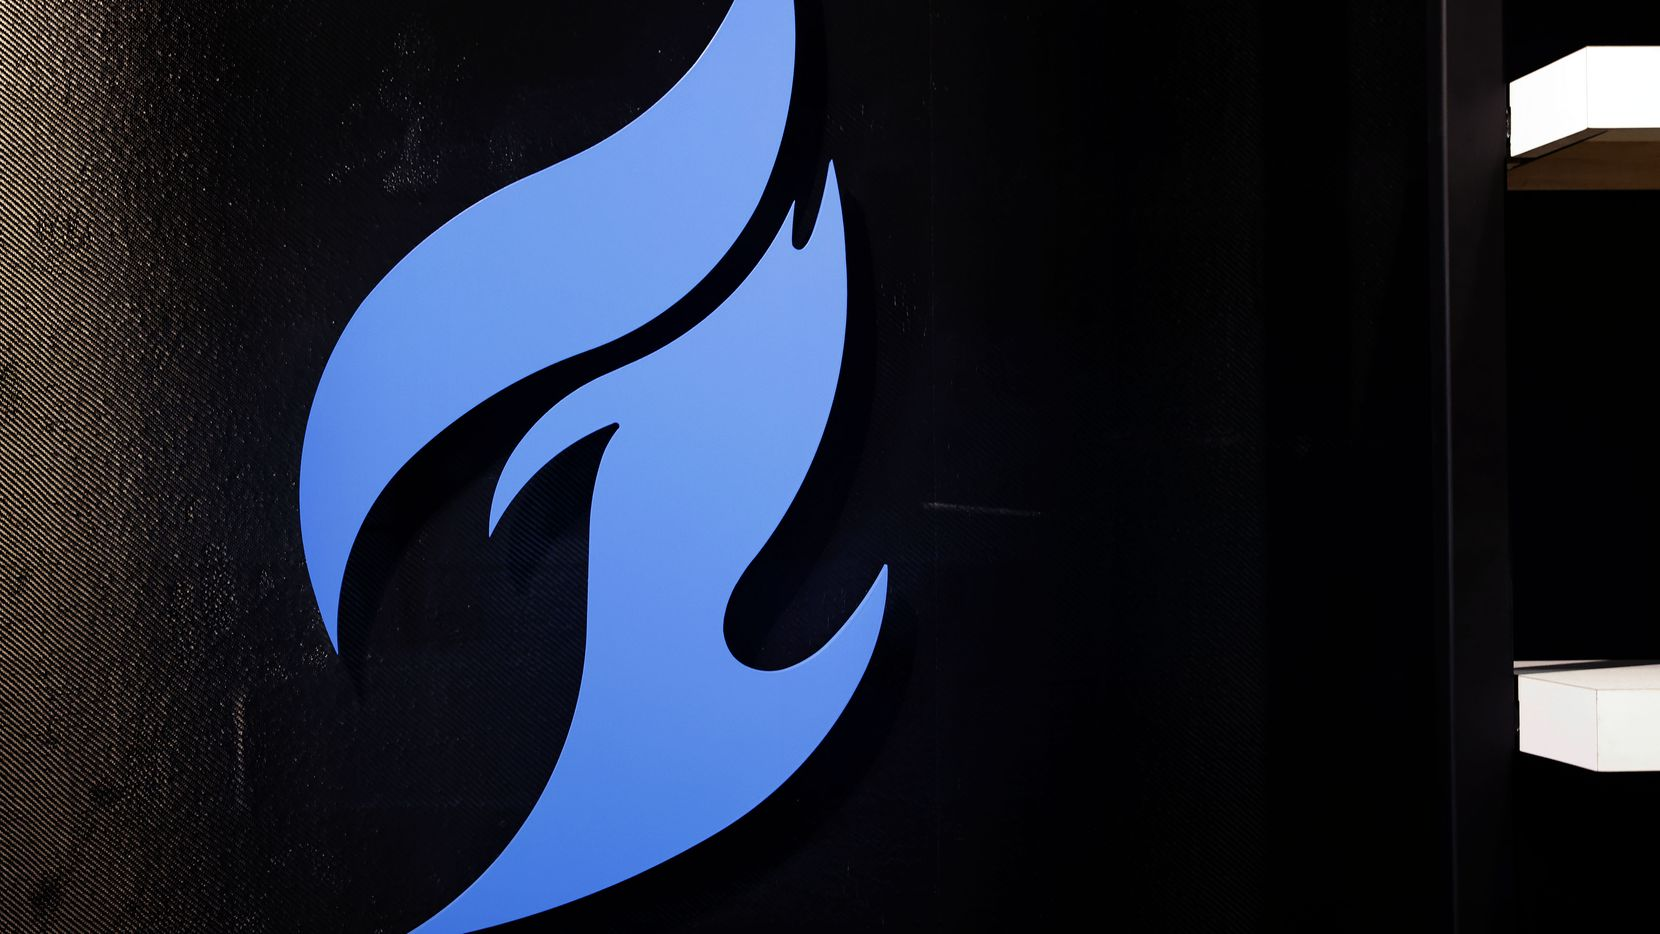 Dallas Fuel Overwatch League is owned by Envy Gaming in Dallas, Monday, March 29, 2021. (Tom Fox/The Dallas Morning News)